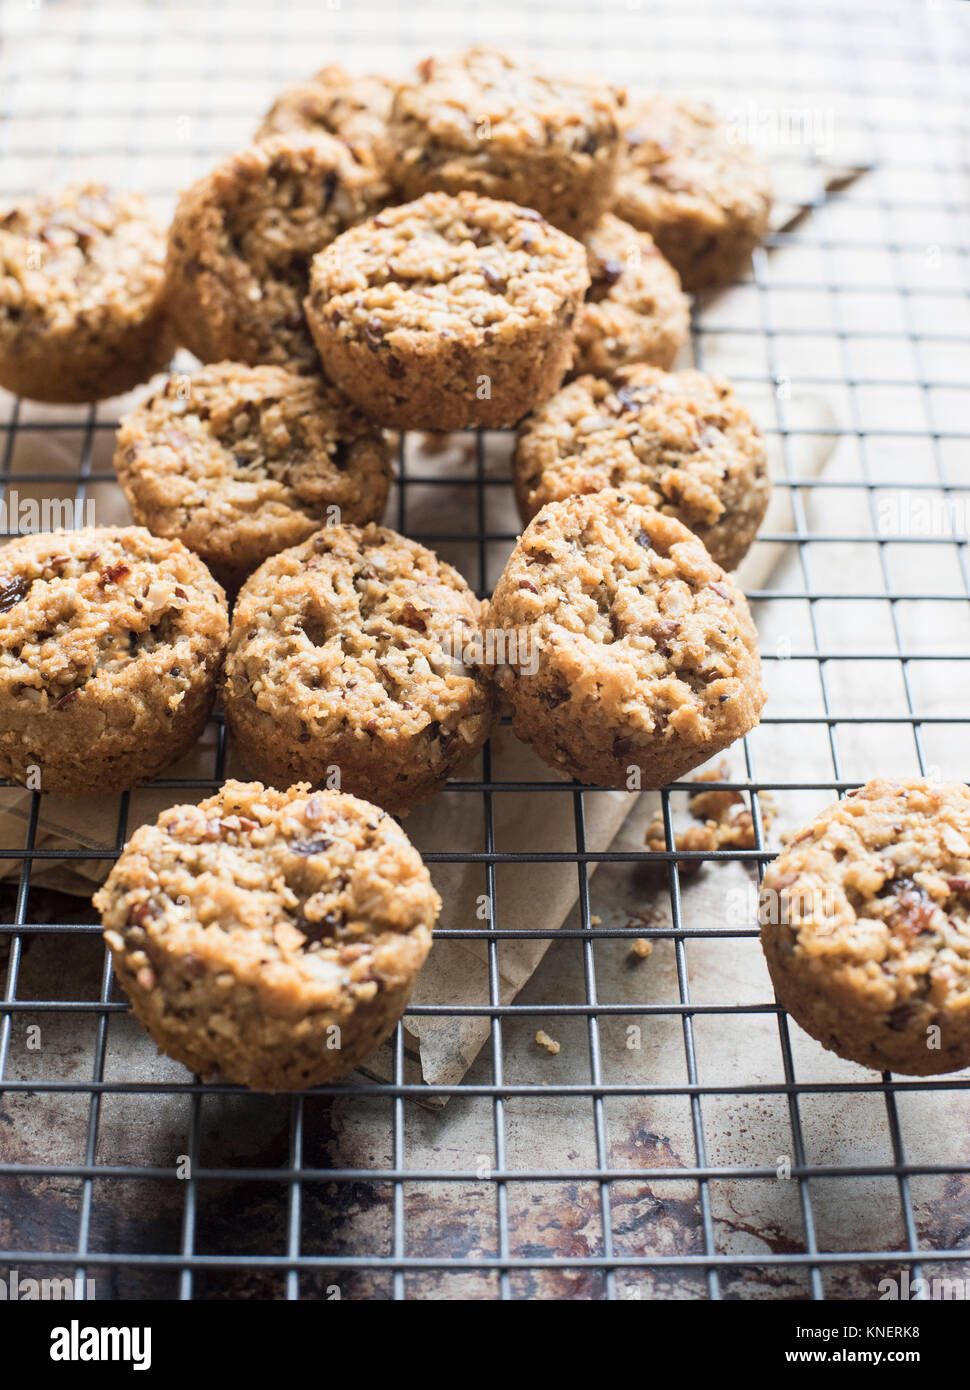 Gluten free, multi-grain cookies on cooling rack, close-up - Stock Image